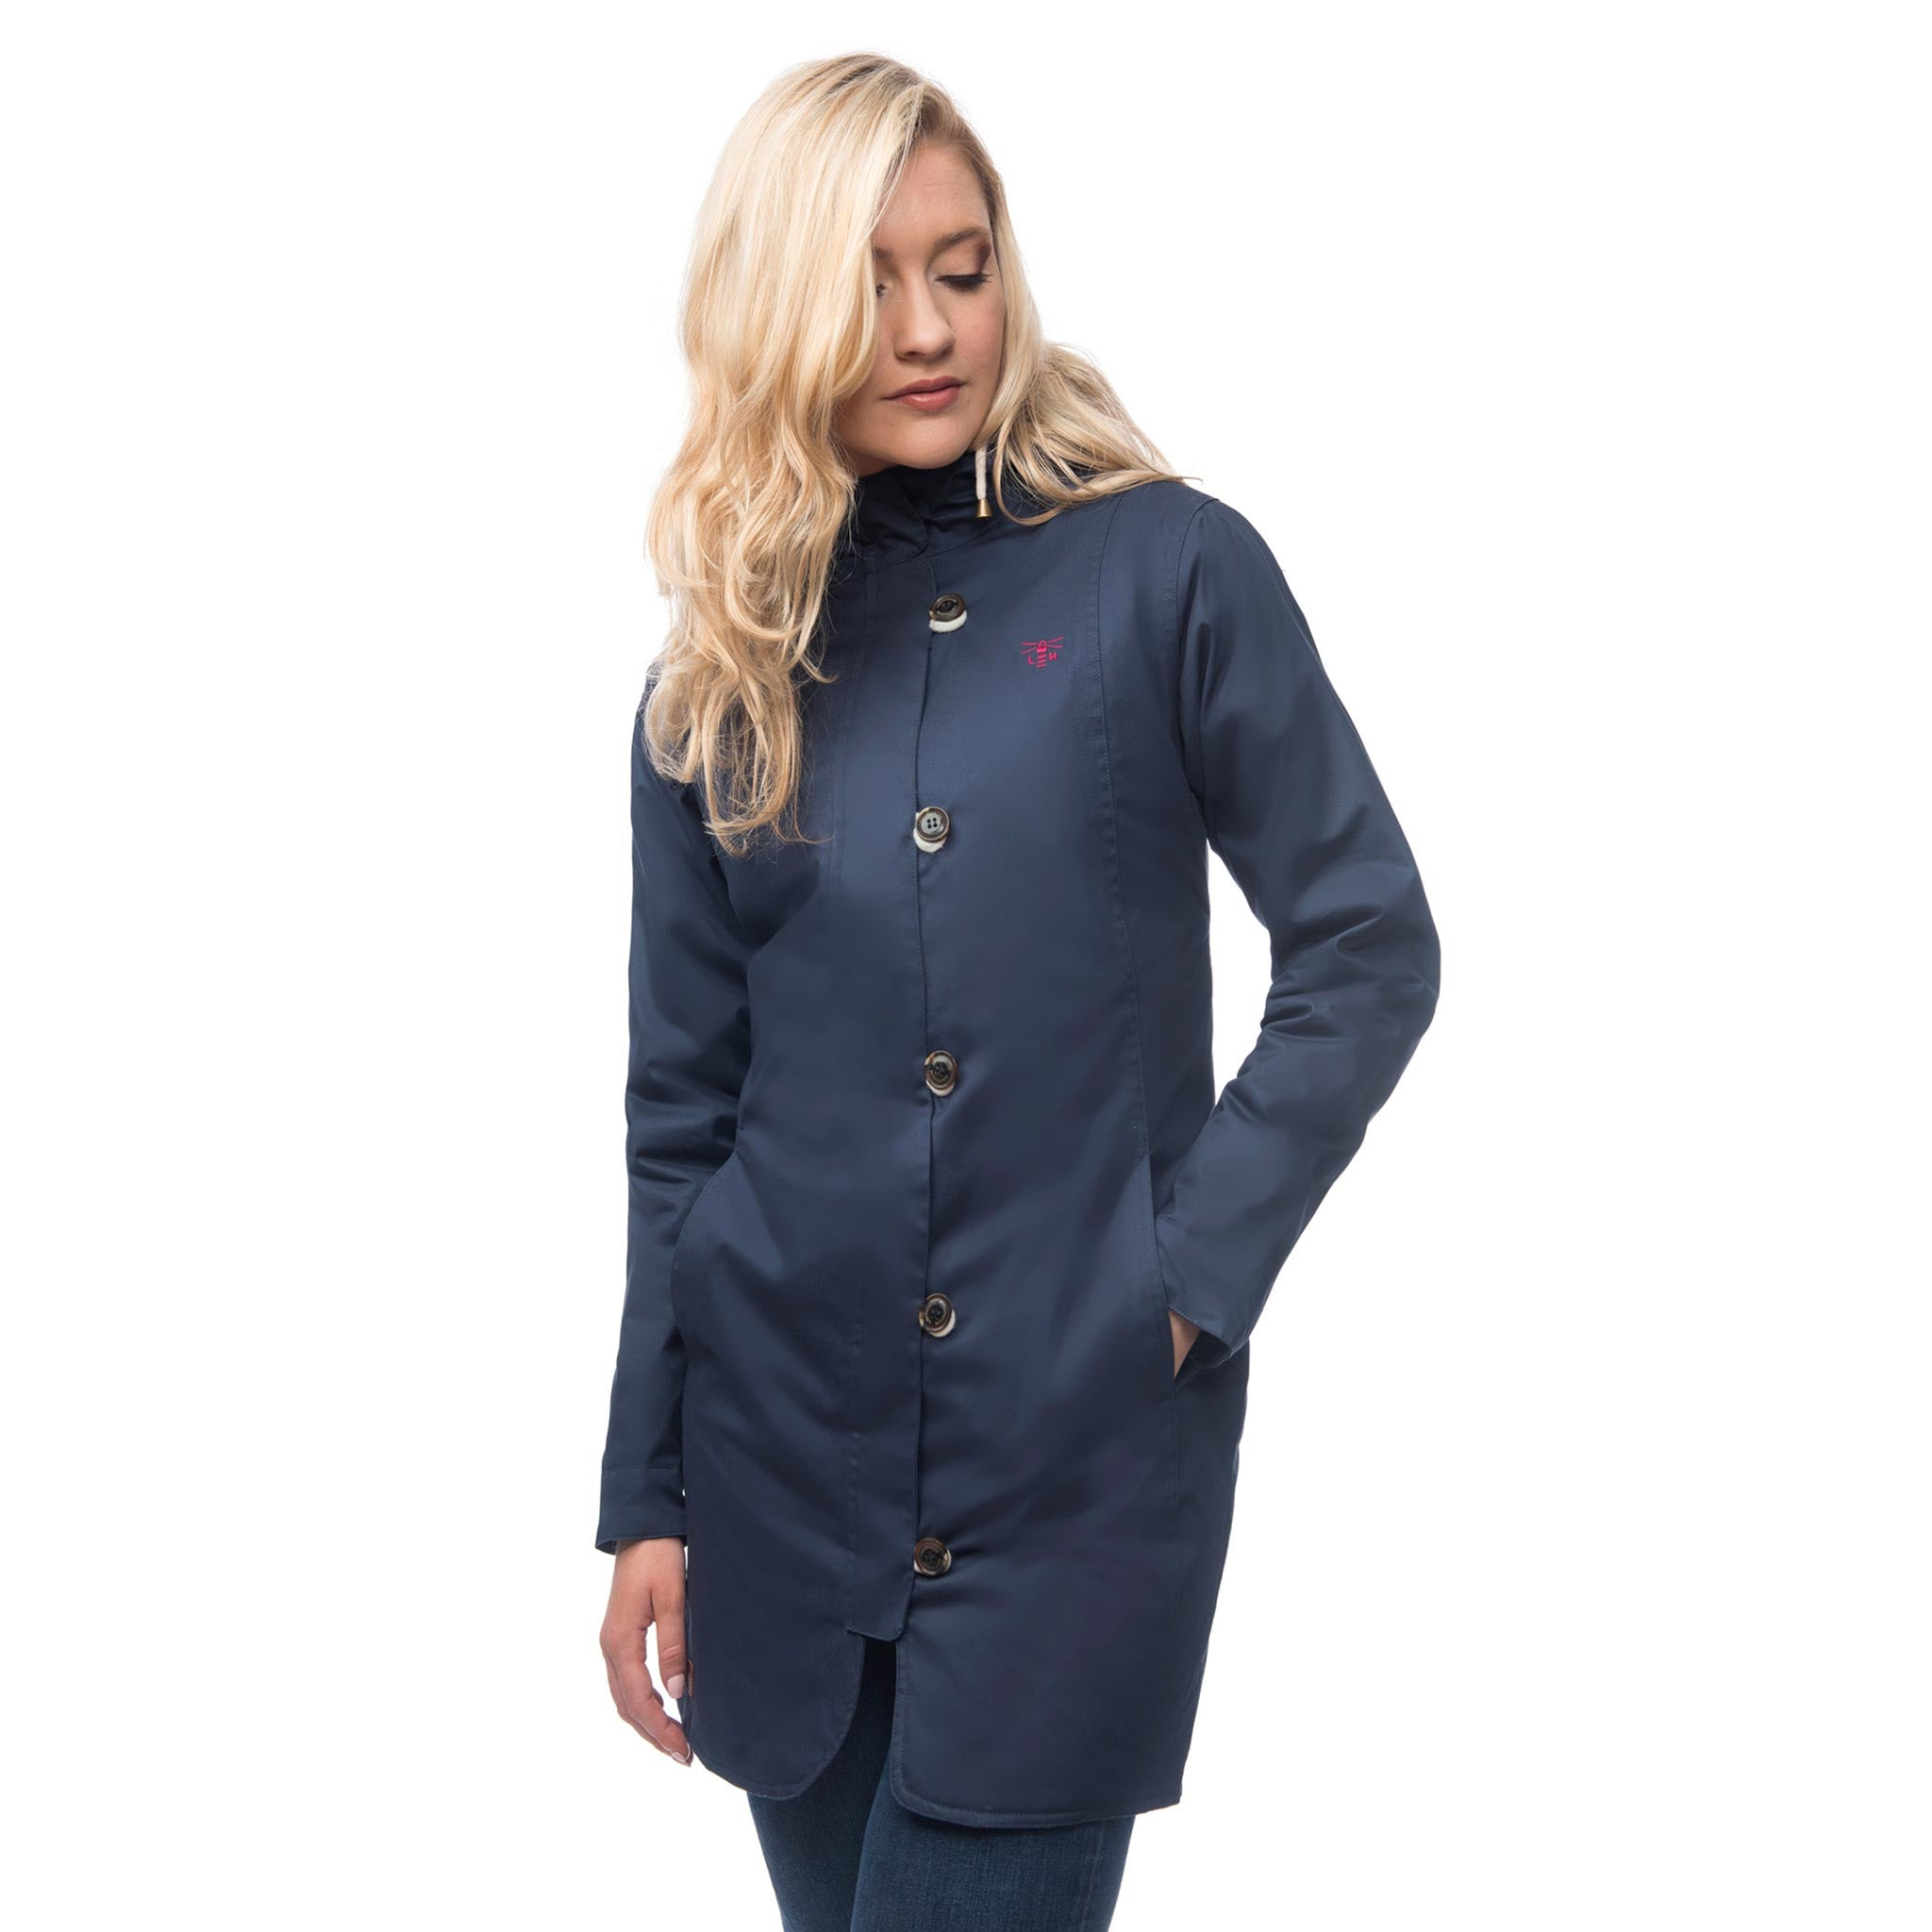 Lighthouse Womens Reva Waterproof Hooded Parka Raincoat in Navy Nightshade. Coat zipped & buttoned.